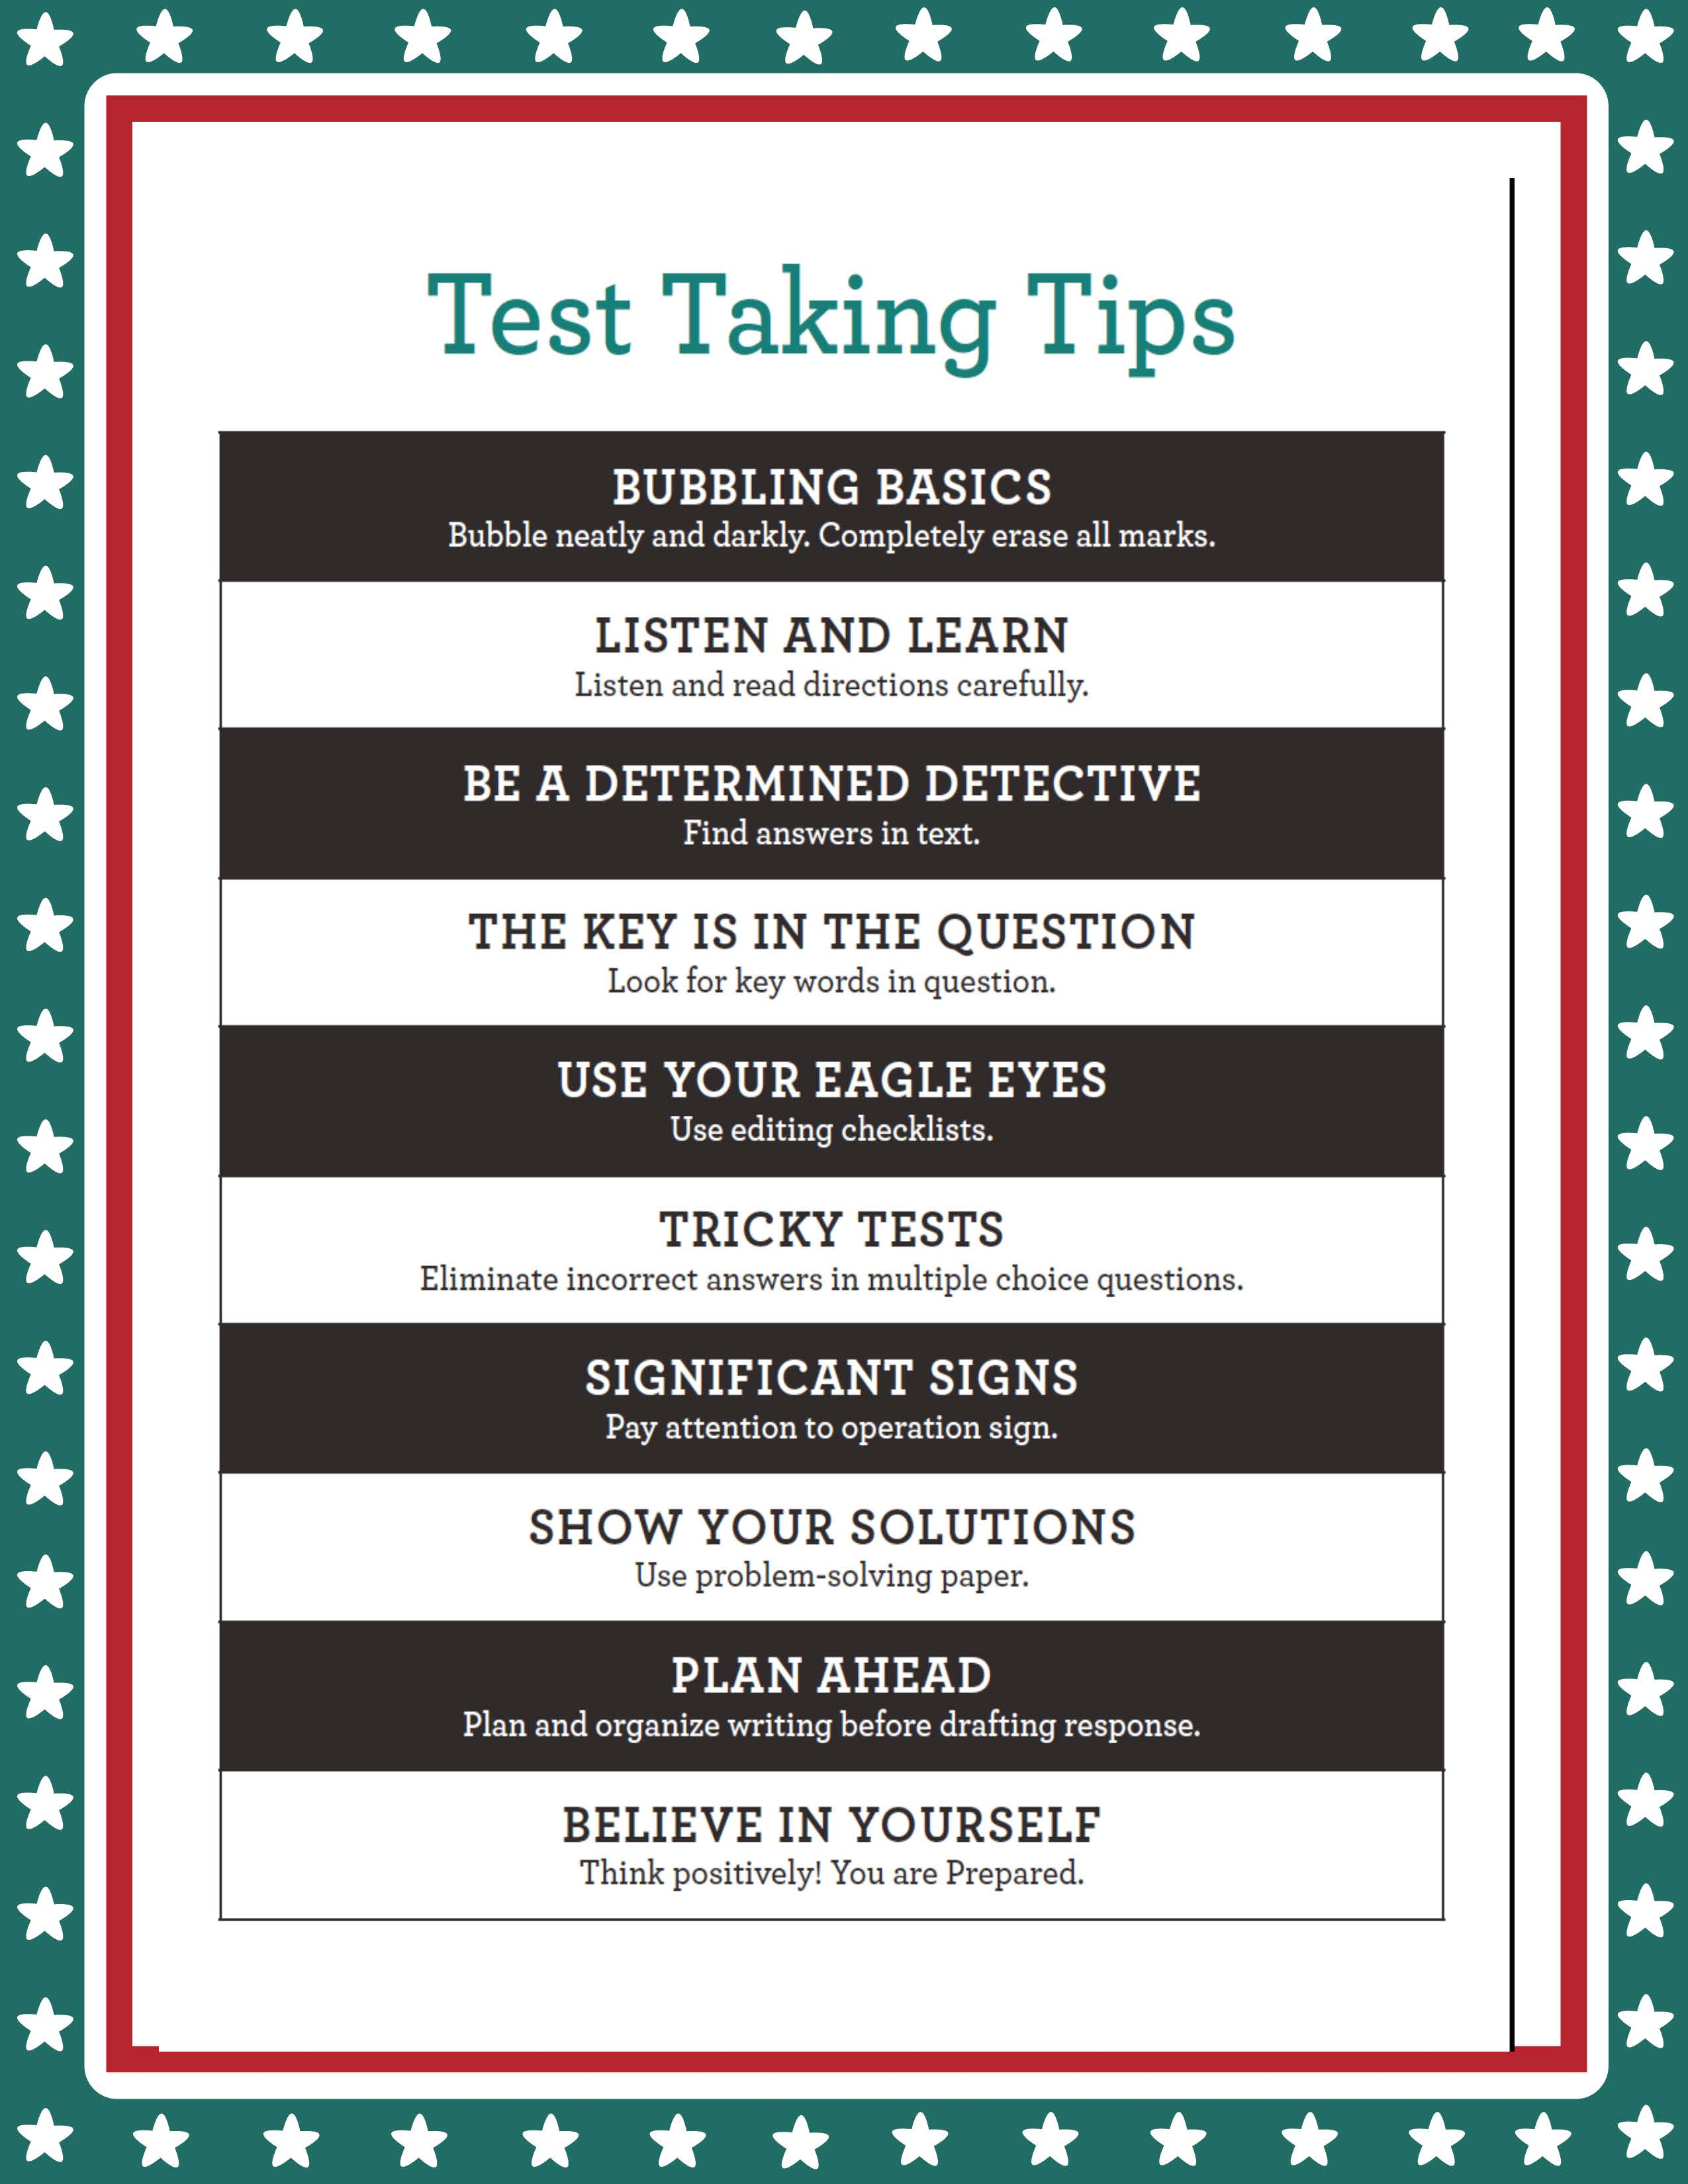 5 Secrets to Successful Test Prep | Astute Hoot